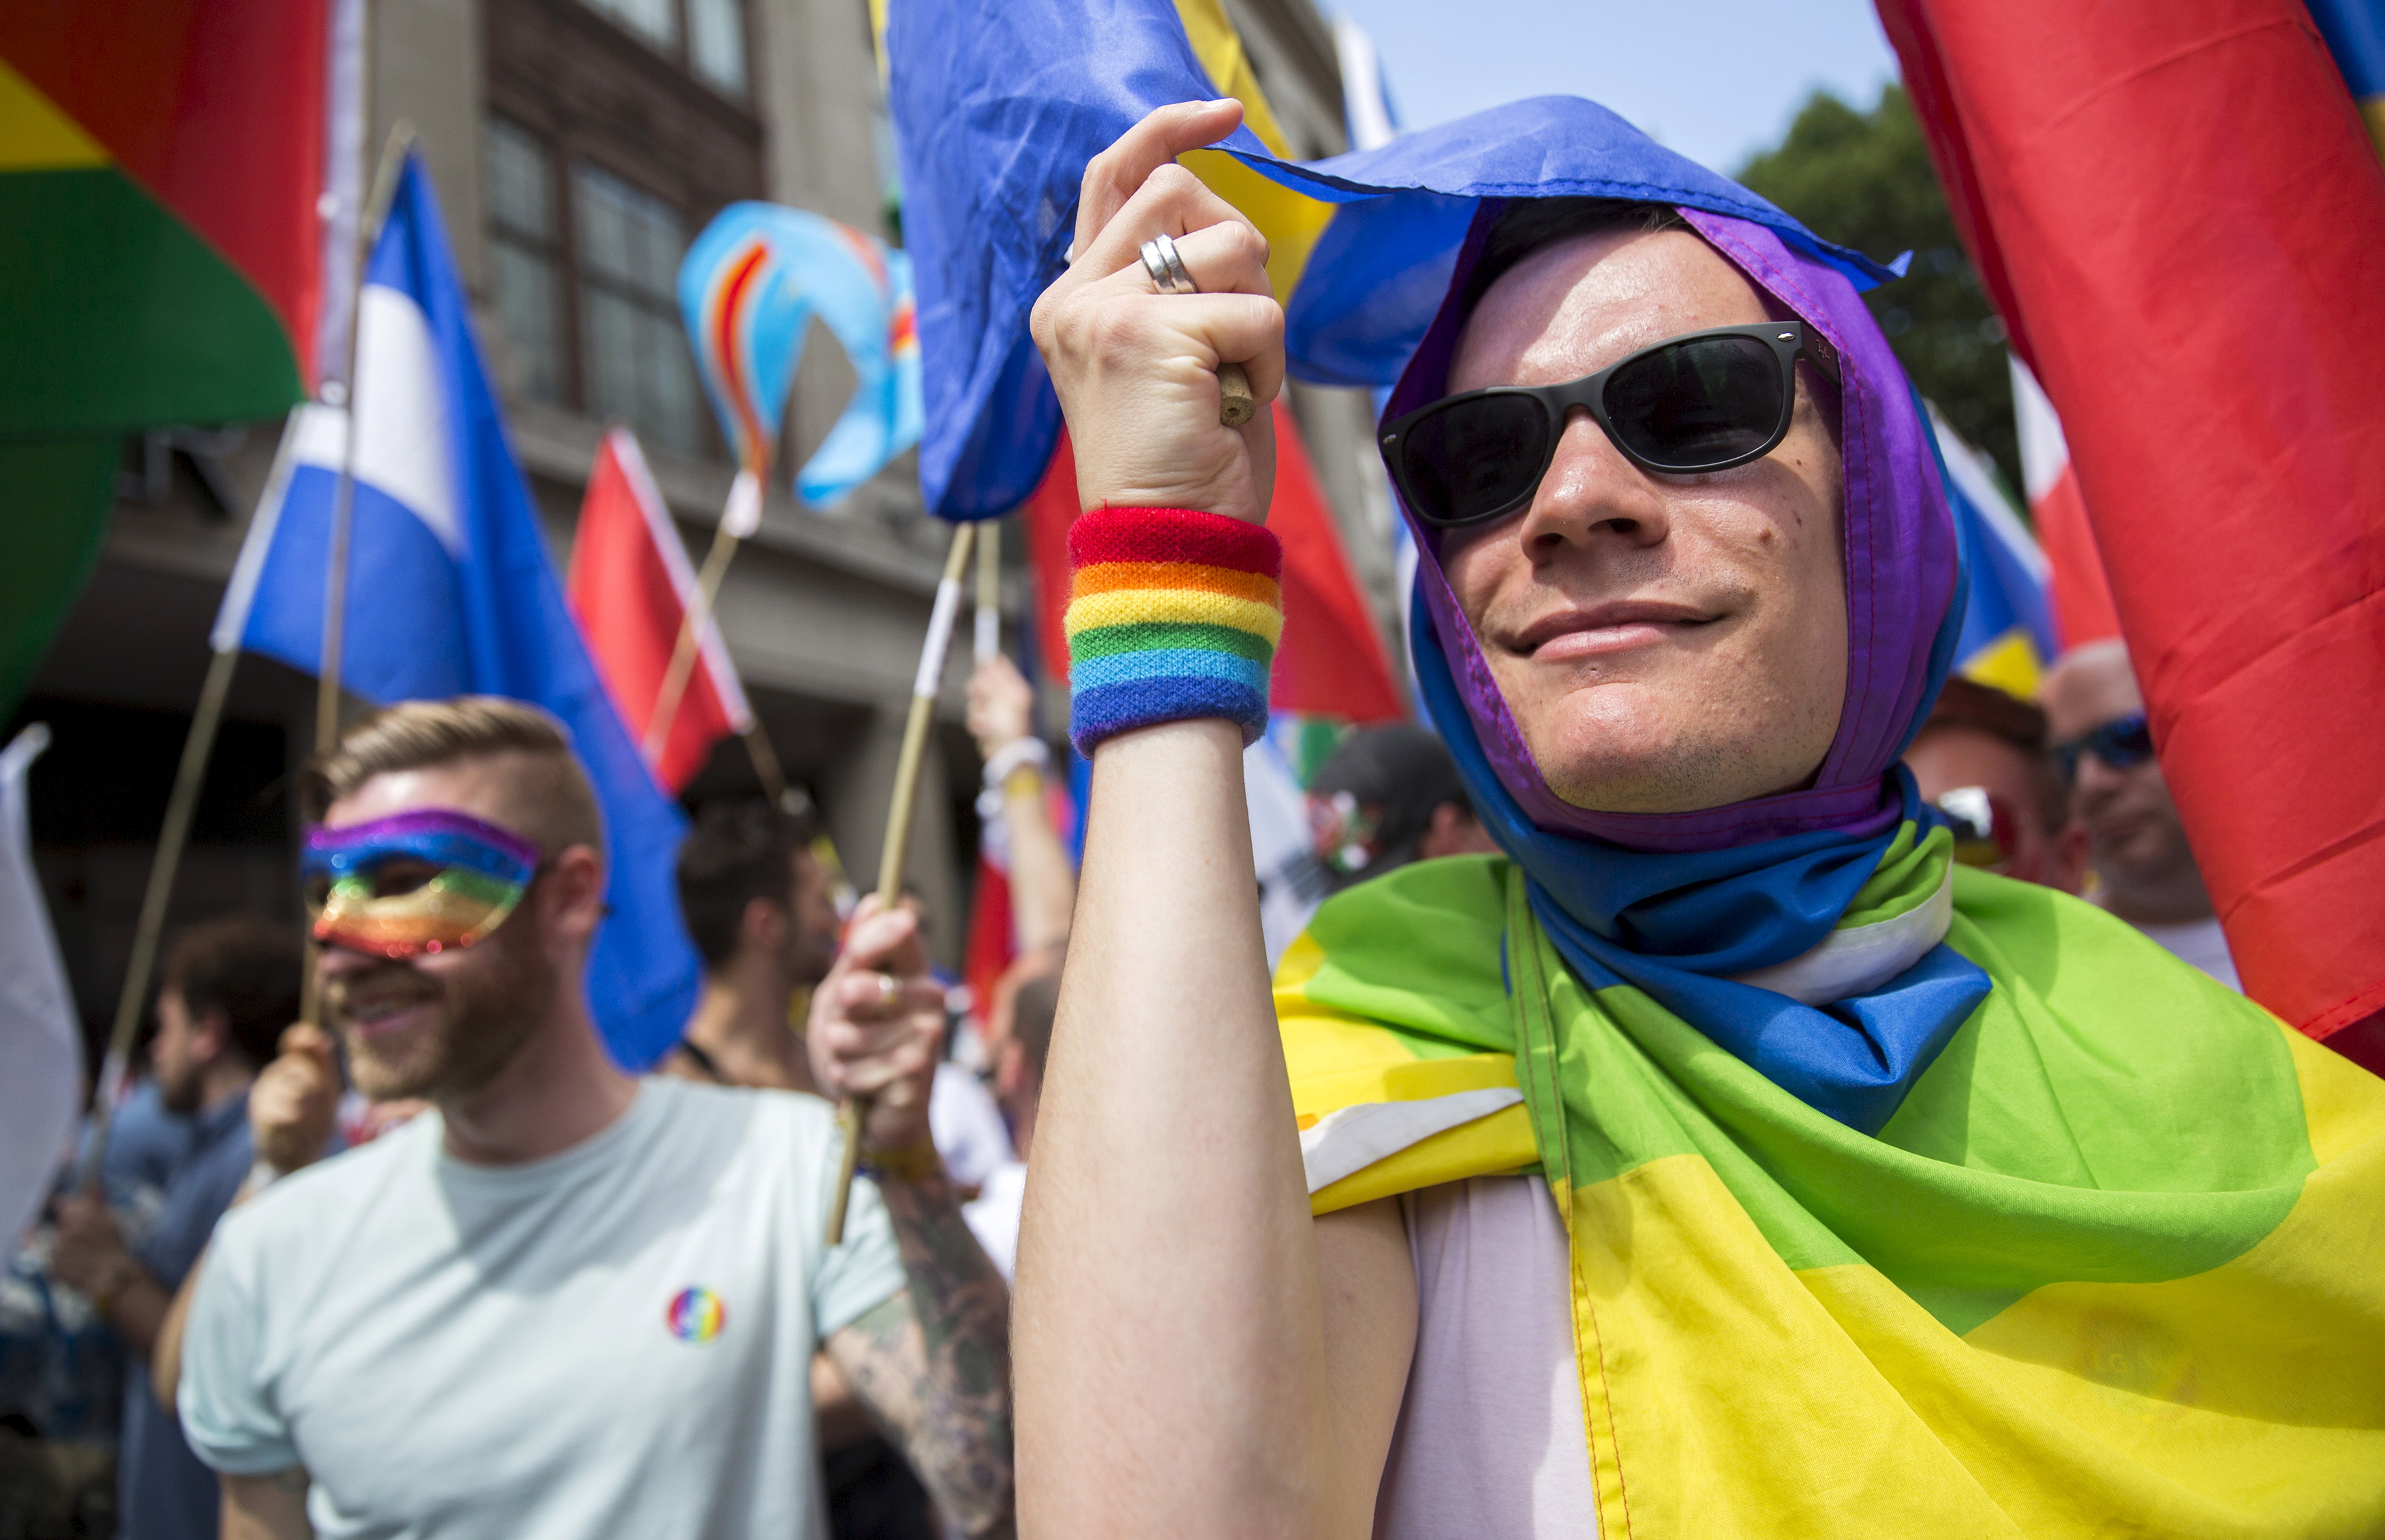 Participants take part in the annual Pride London Parade which highlights issues of the gay, lesbian and transgender community, in London, Britain June 27, 2015. REUTERS/Neil Hall - RTX1I1VX